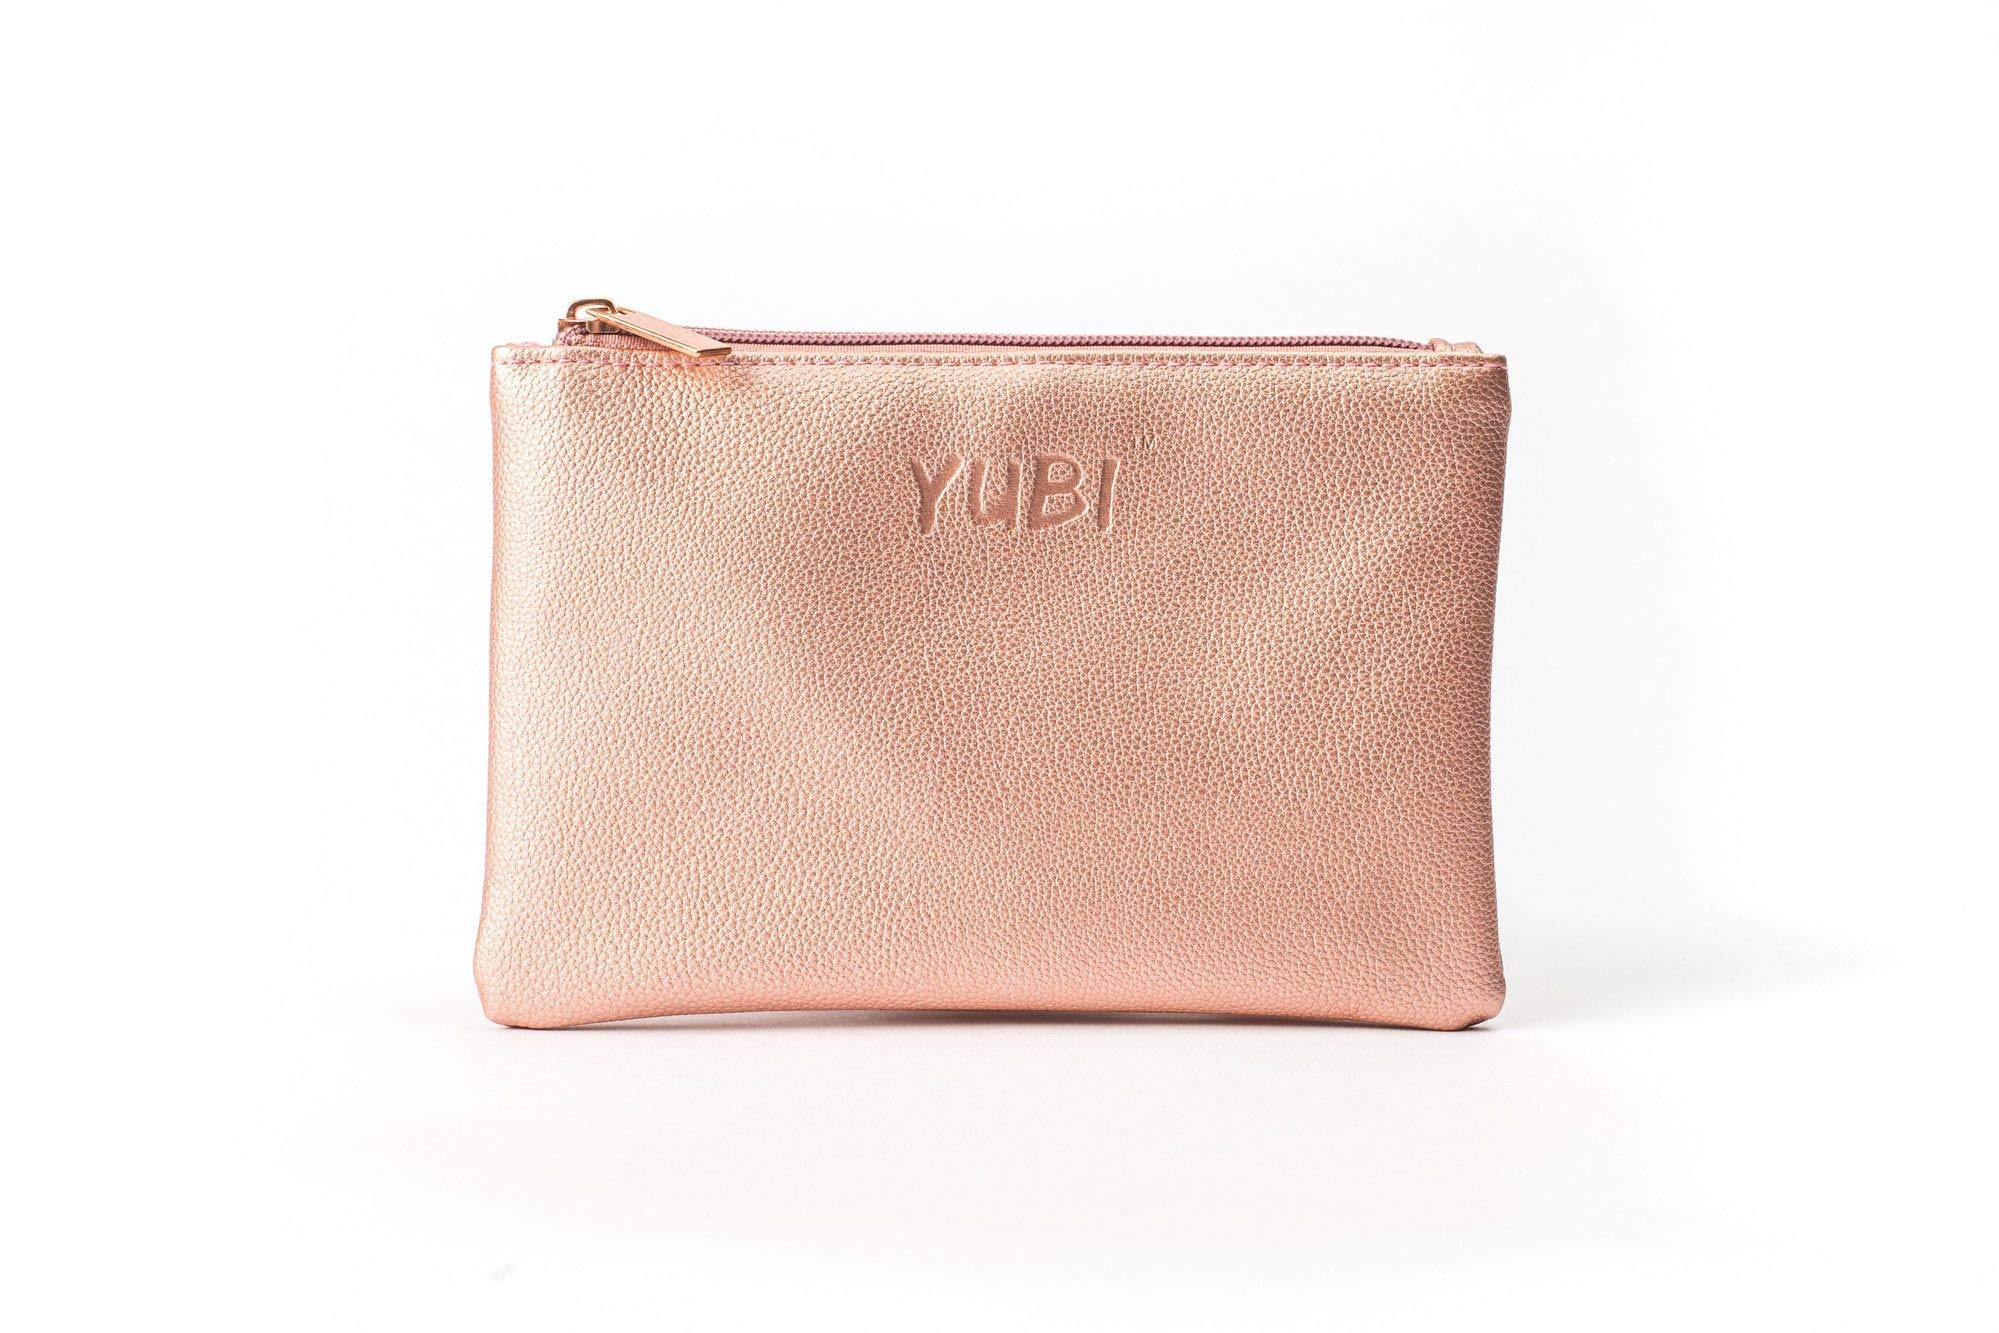 YUBI Makeup Pouch Cosmetic Beauty Bag – Perfect for Yubi Brush and Sponge - Make up Essentials Toiletry Bag Organizer for Women – Travel Essential Makeup Case for Your Accessories